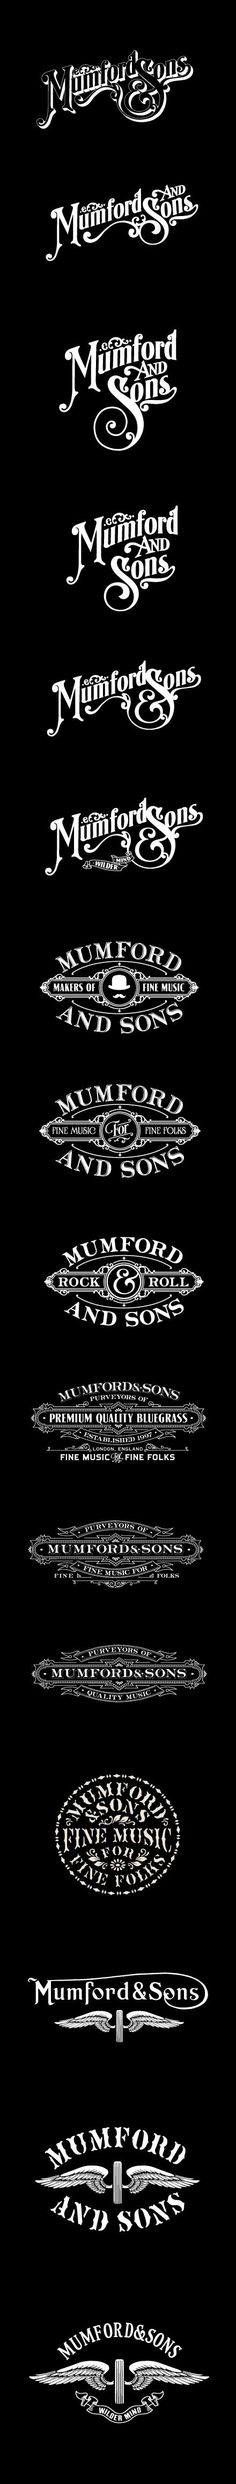 Mumford & Sons on Typography Served